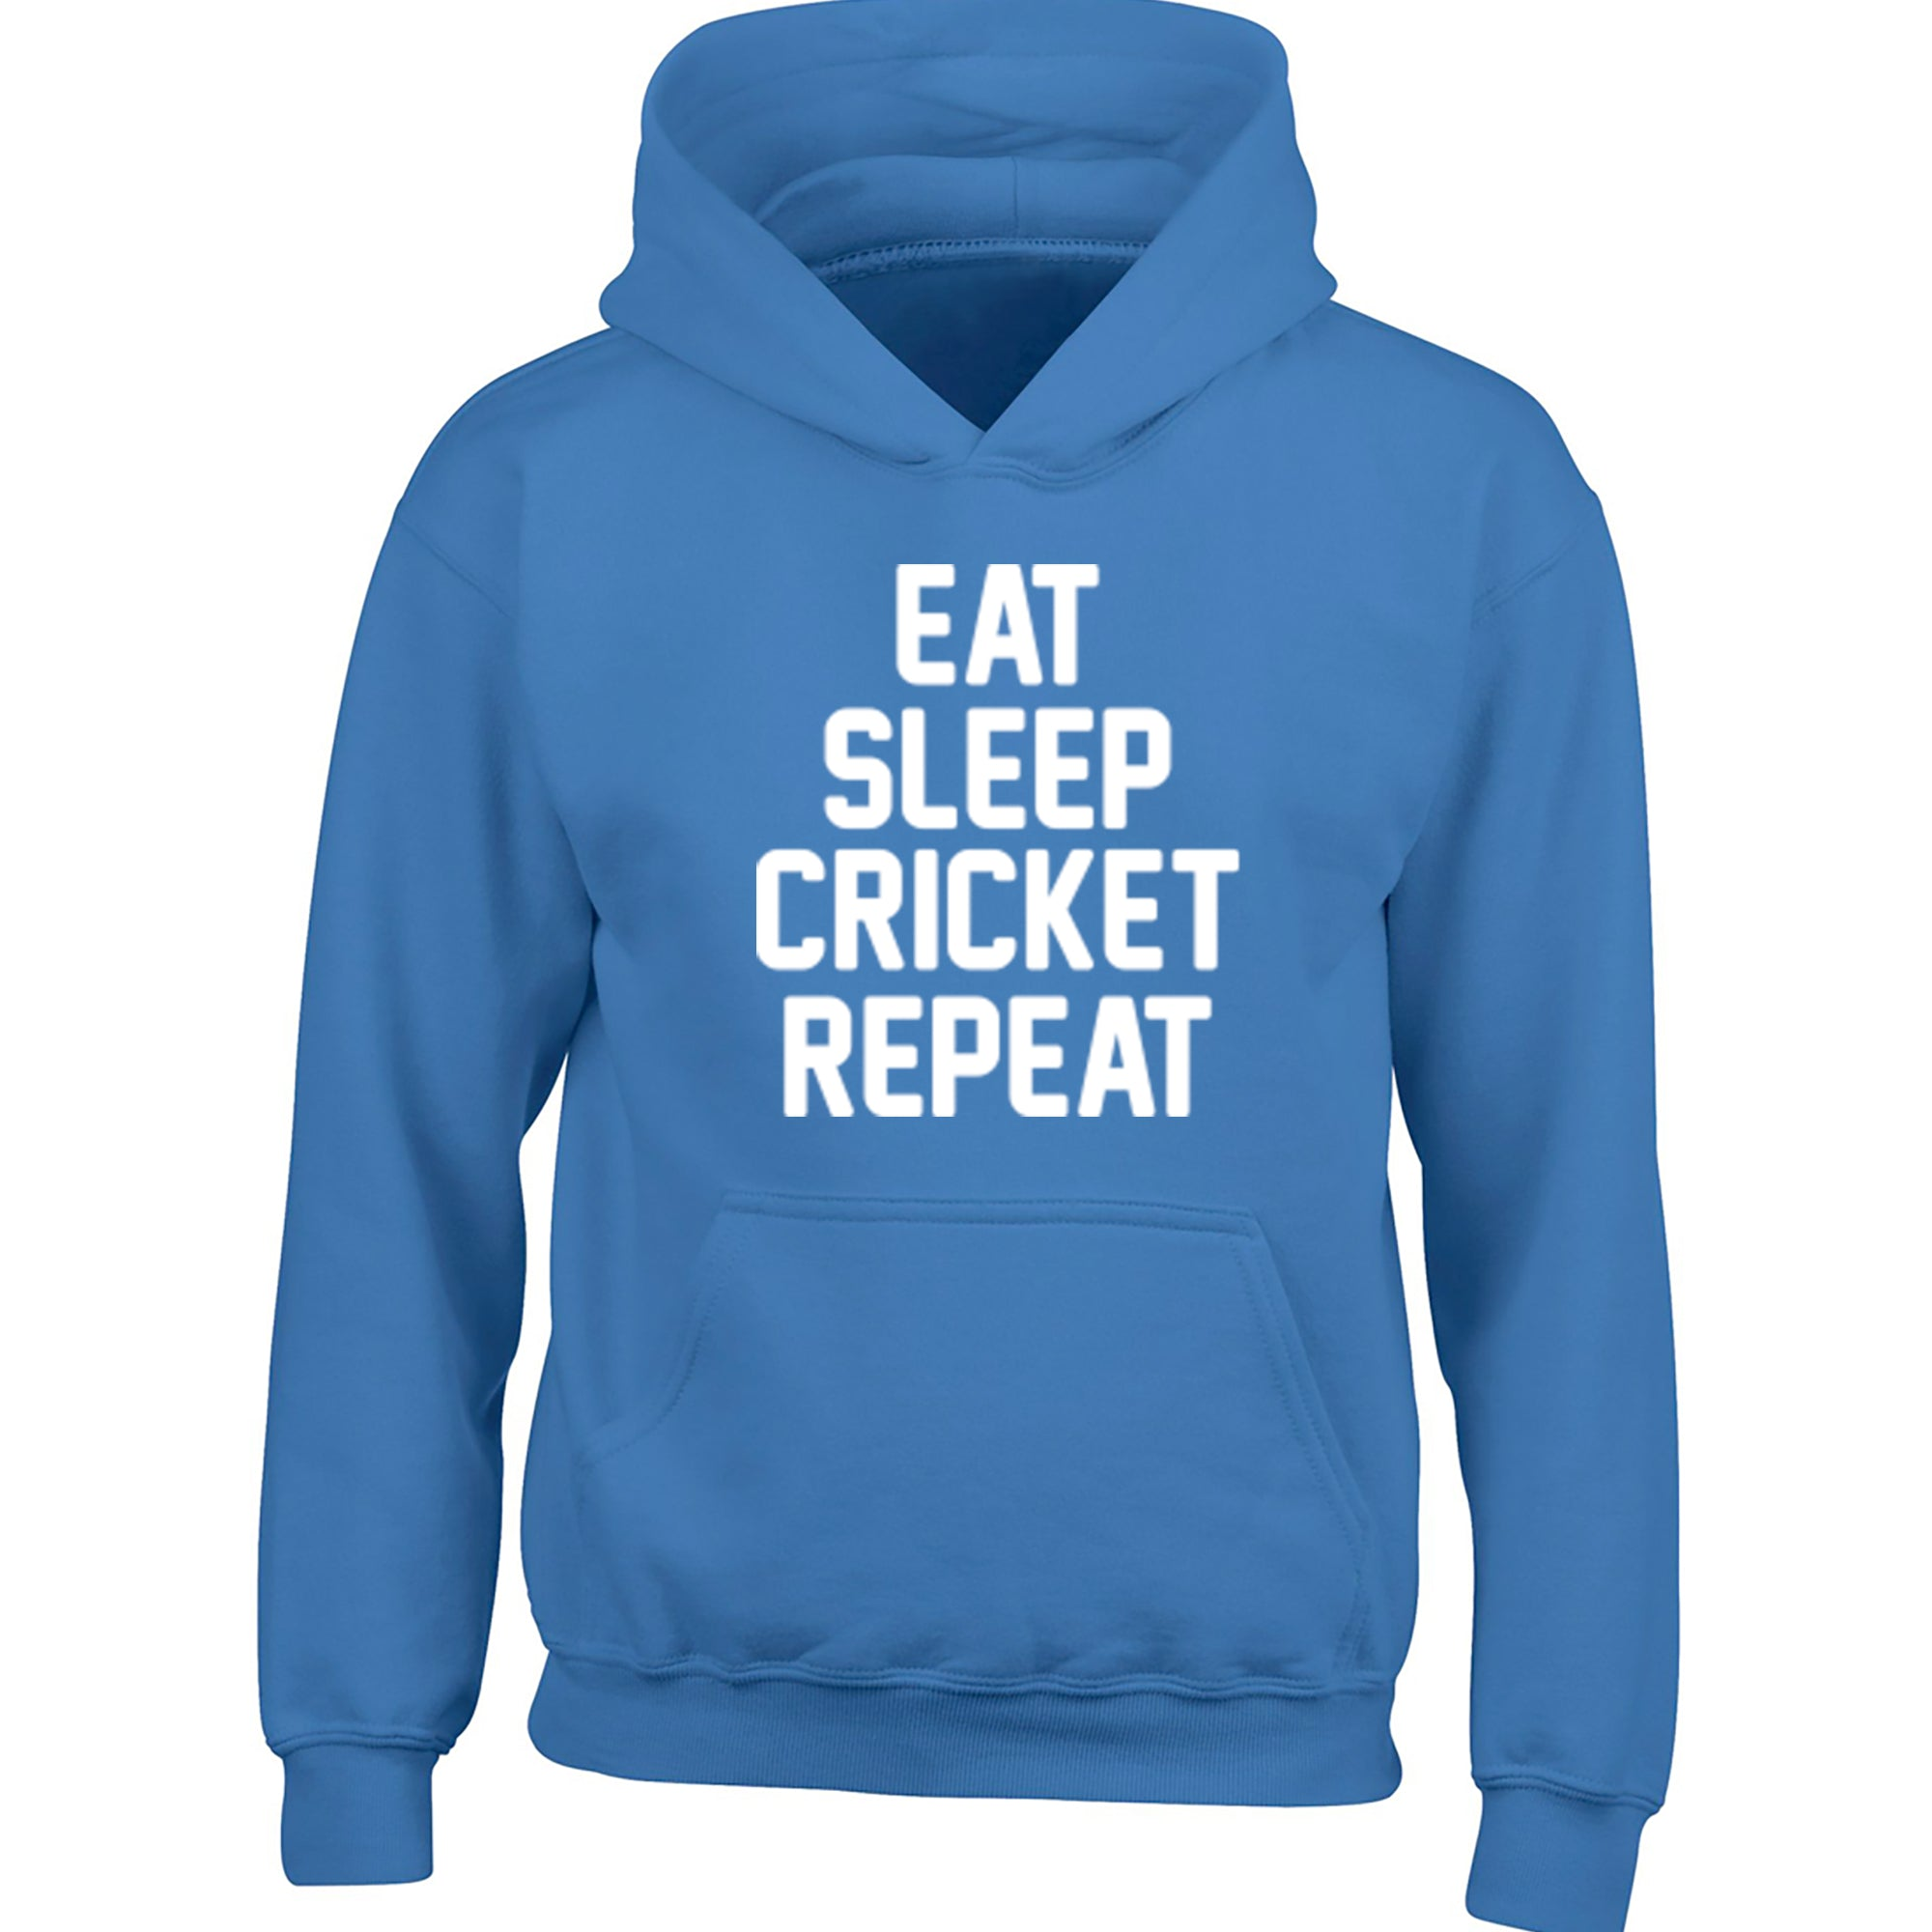 Eat Sleep Cricket Repeat Childrens Ages 3/4-12/14 Unisex Hoodie K0871 - Illustrated Identity Ltd.